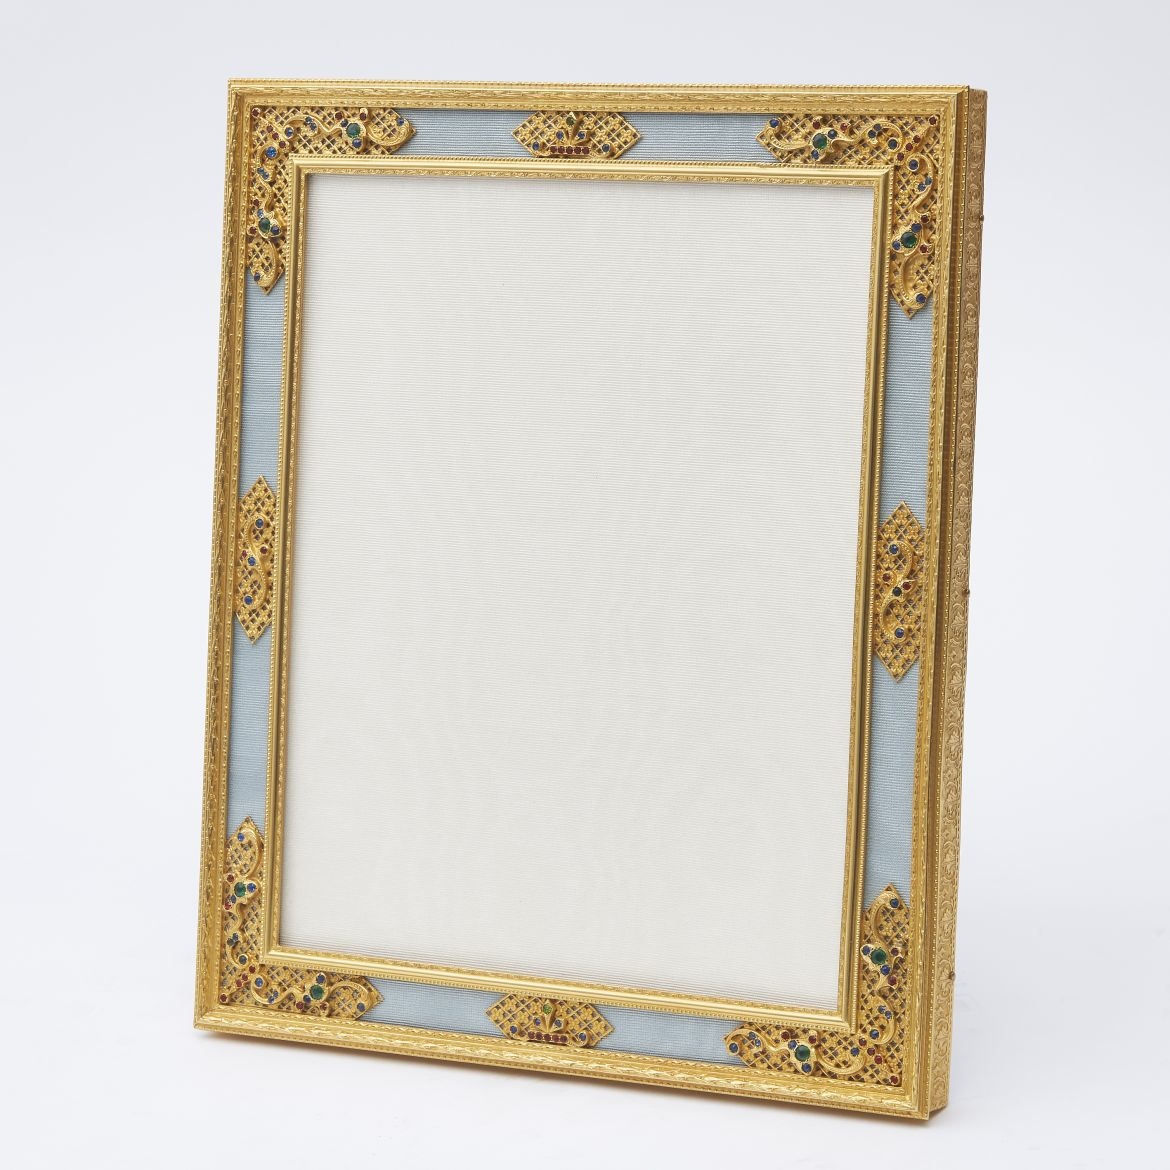 Large Ormolu Frame With Paste Stones And Filigree Decoration